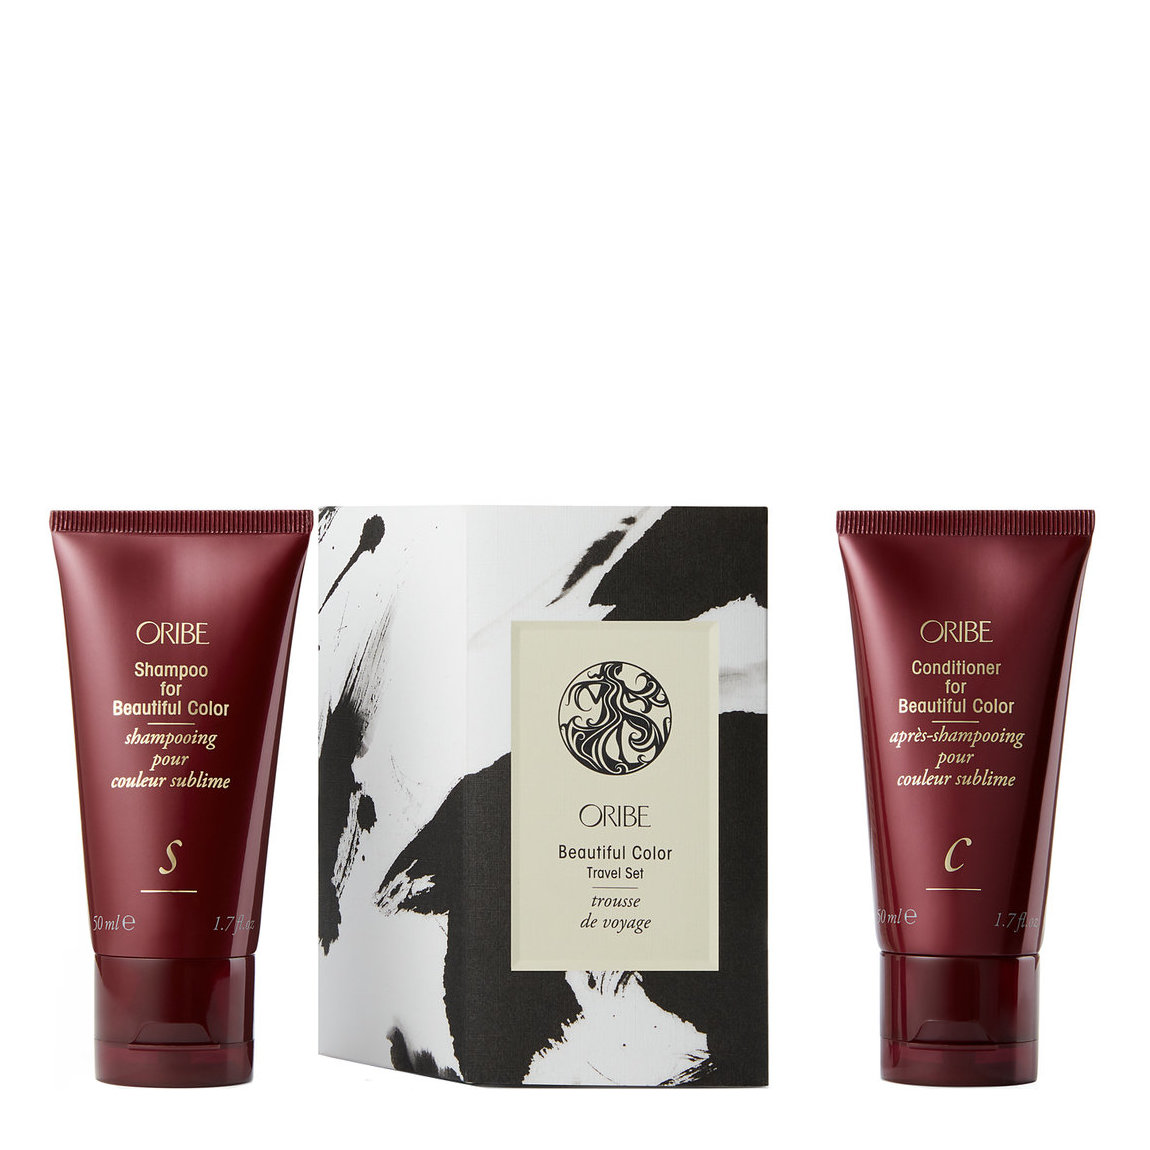 Oribe Beautiful Color Travel Set product smear.